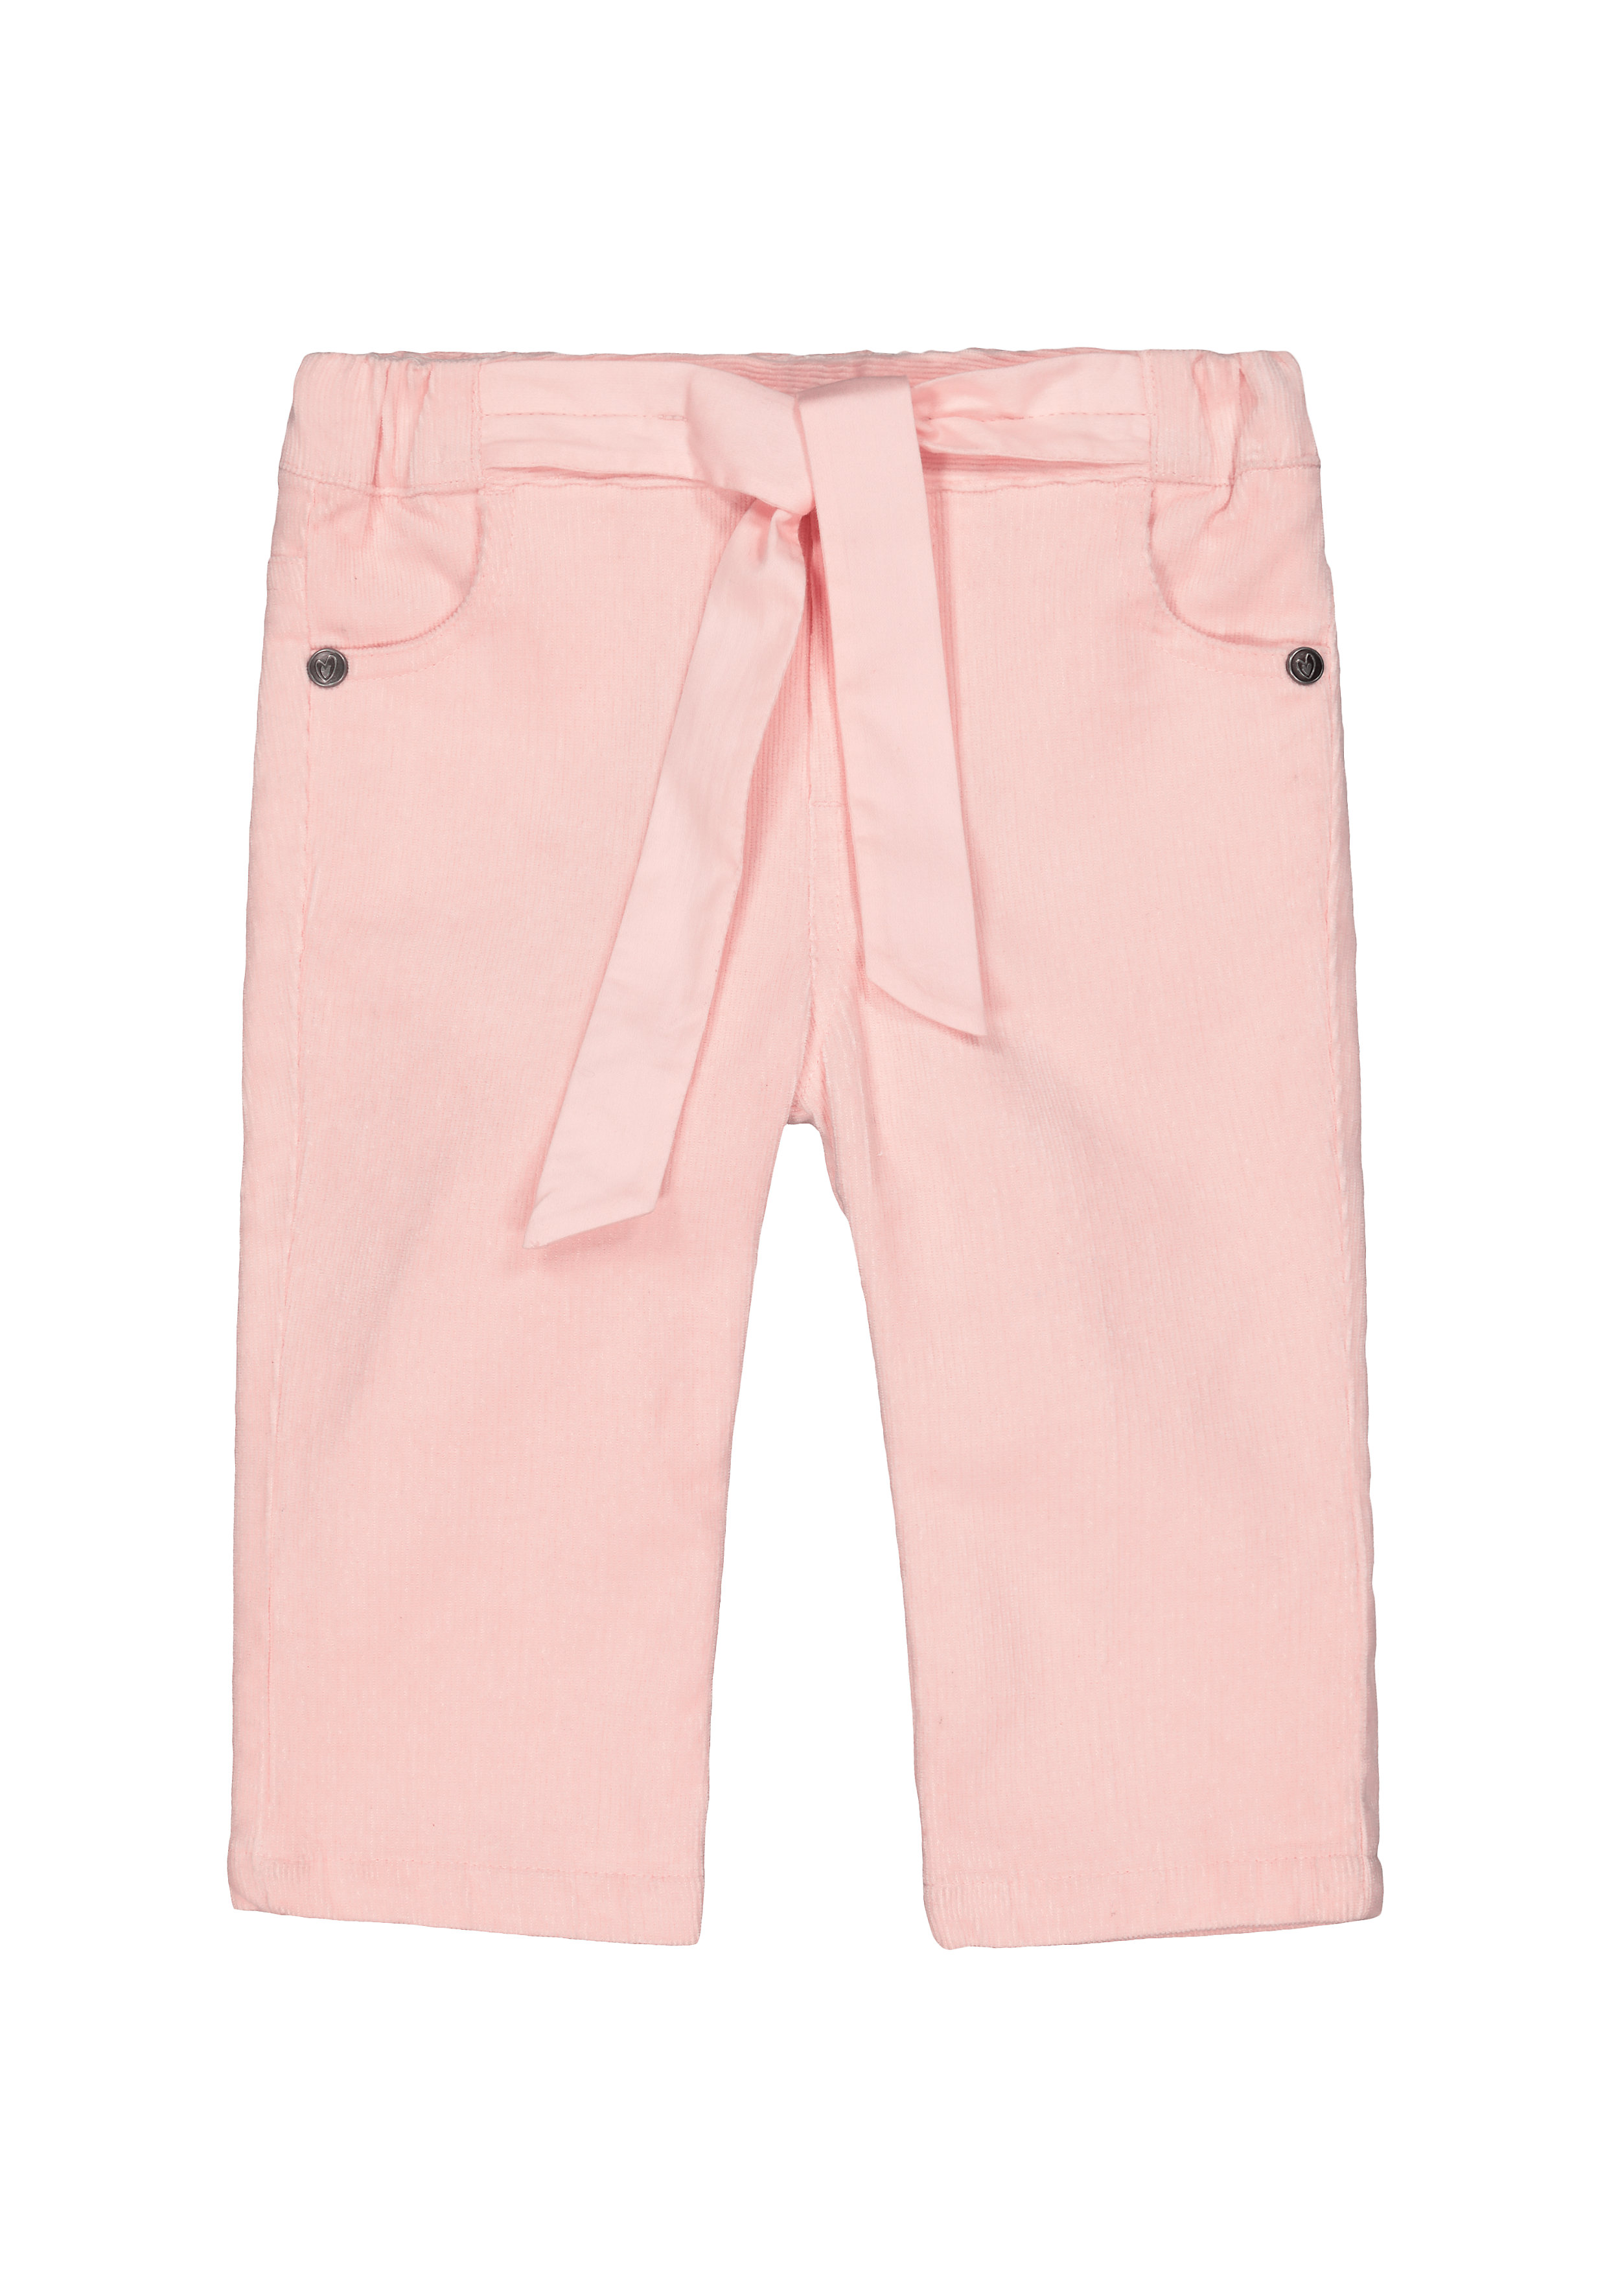 Mothercare   Girls Cord Trousers With Belt - Pink